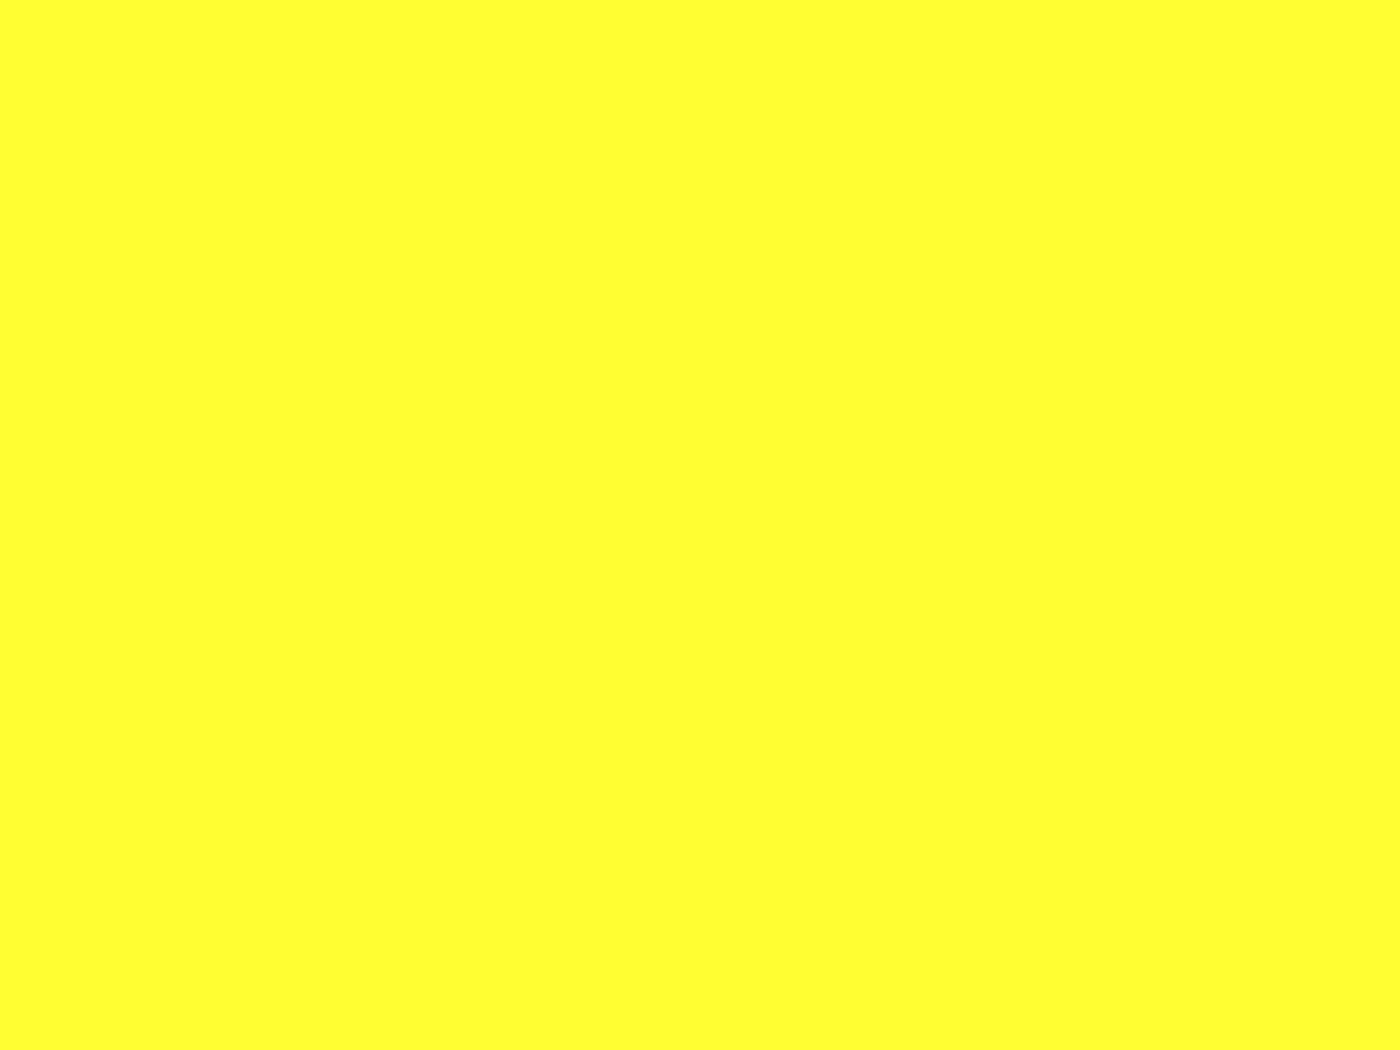 1400x1050 Yellow RYB Solid Color Background